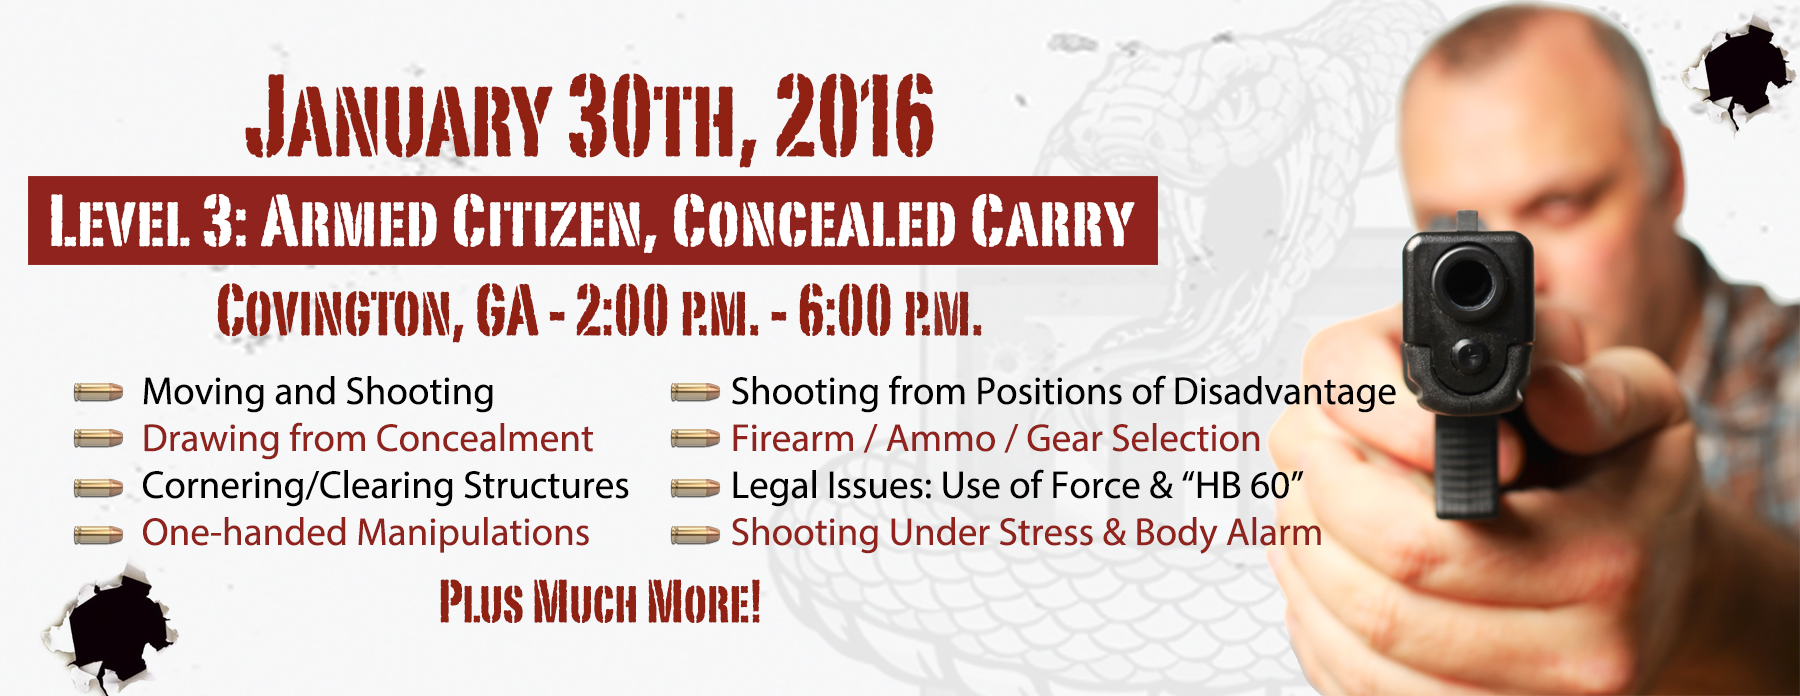 Concealed Carry Handgun Training - Atlanta Georgia